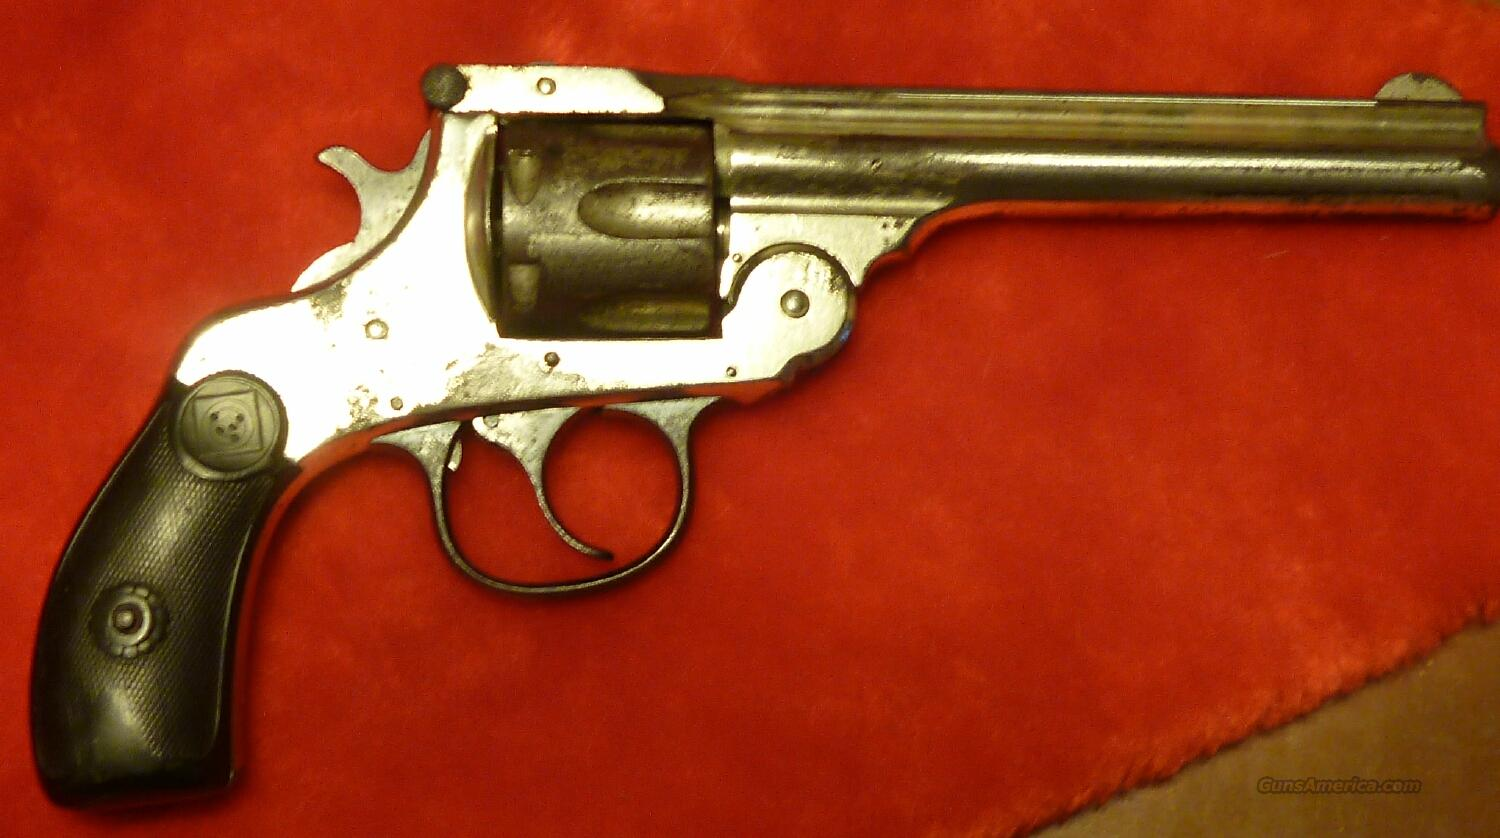 H&R MODEL 2 TOP-BREAK 32S&W - FREE SHIPPING!  Guns > Pistols > Harrington & Richardson Pistols